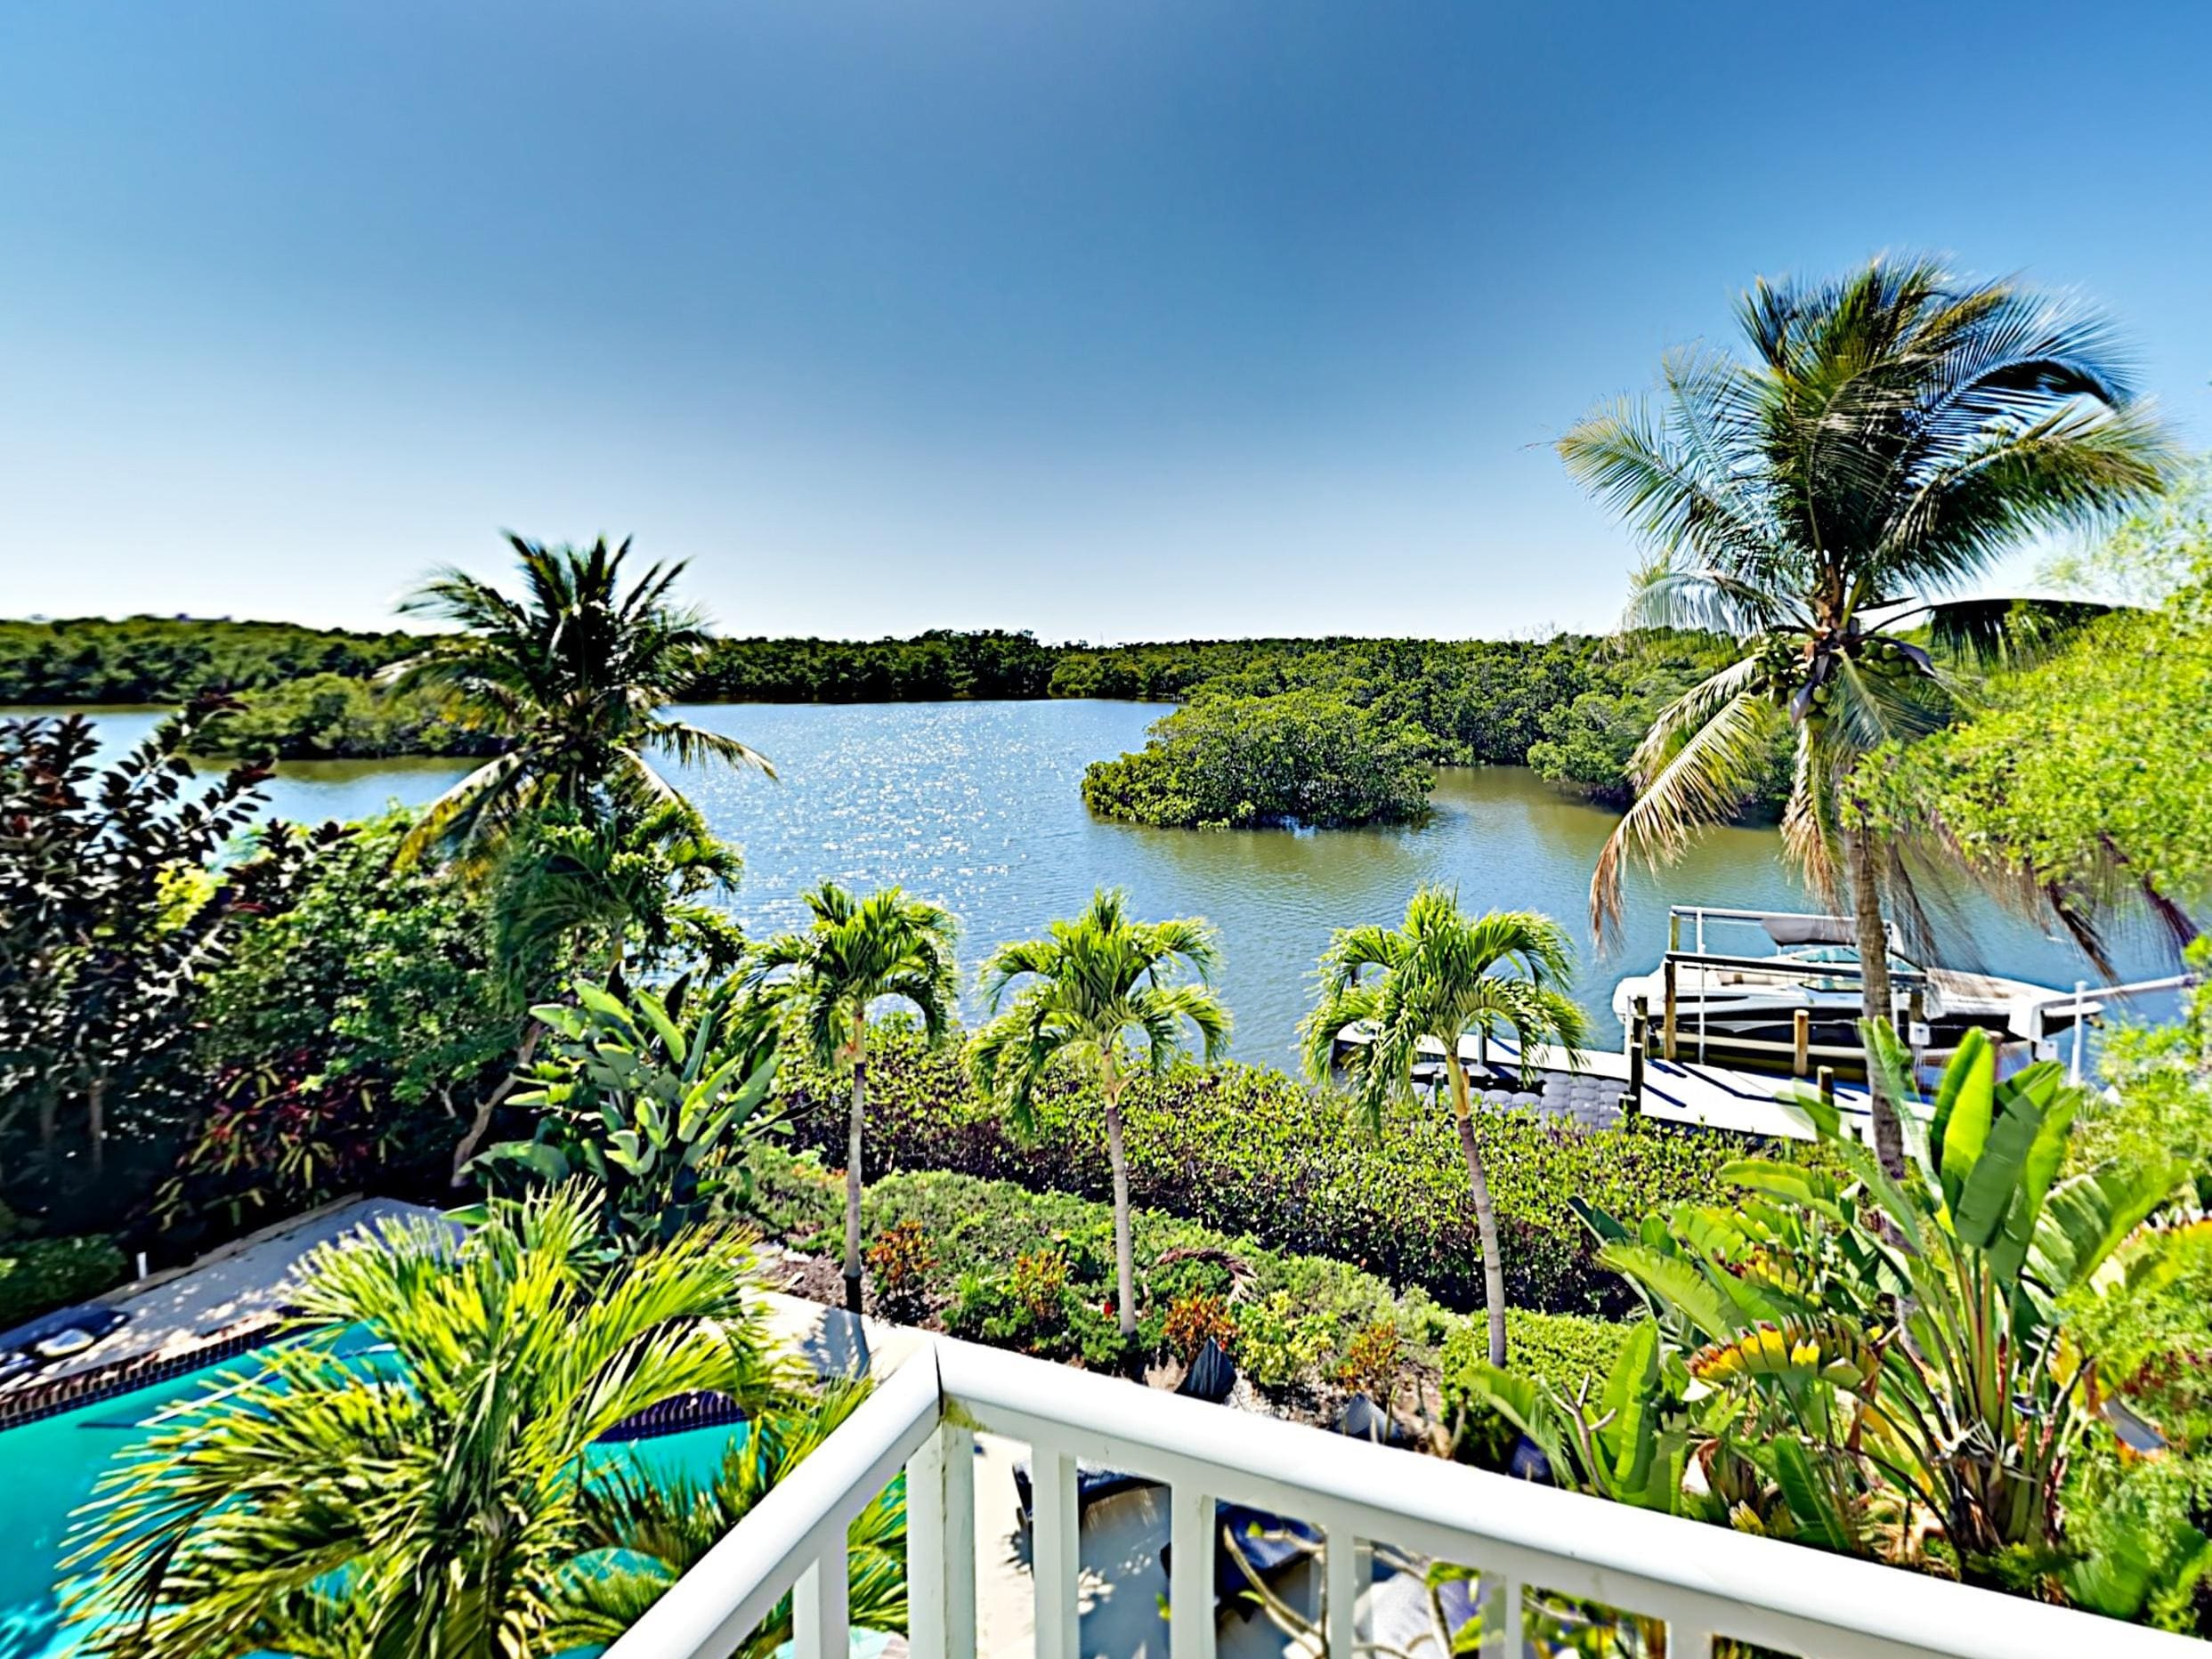 Gorgeous views across the canal and mangroves await on the private balcony.